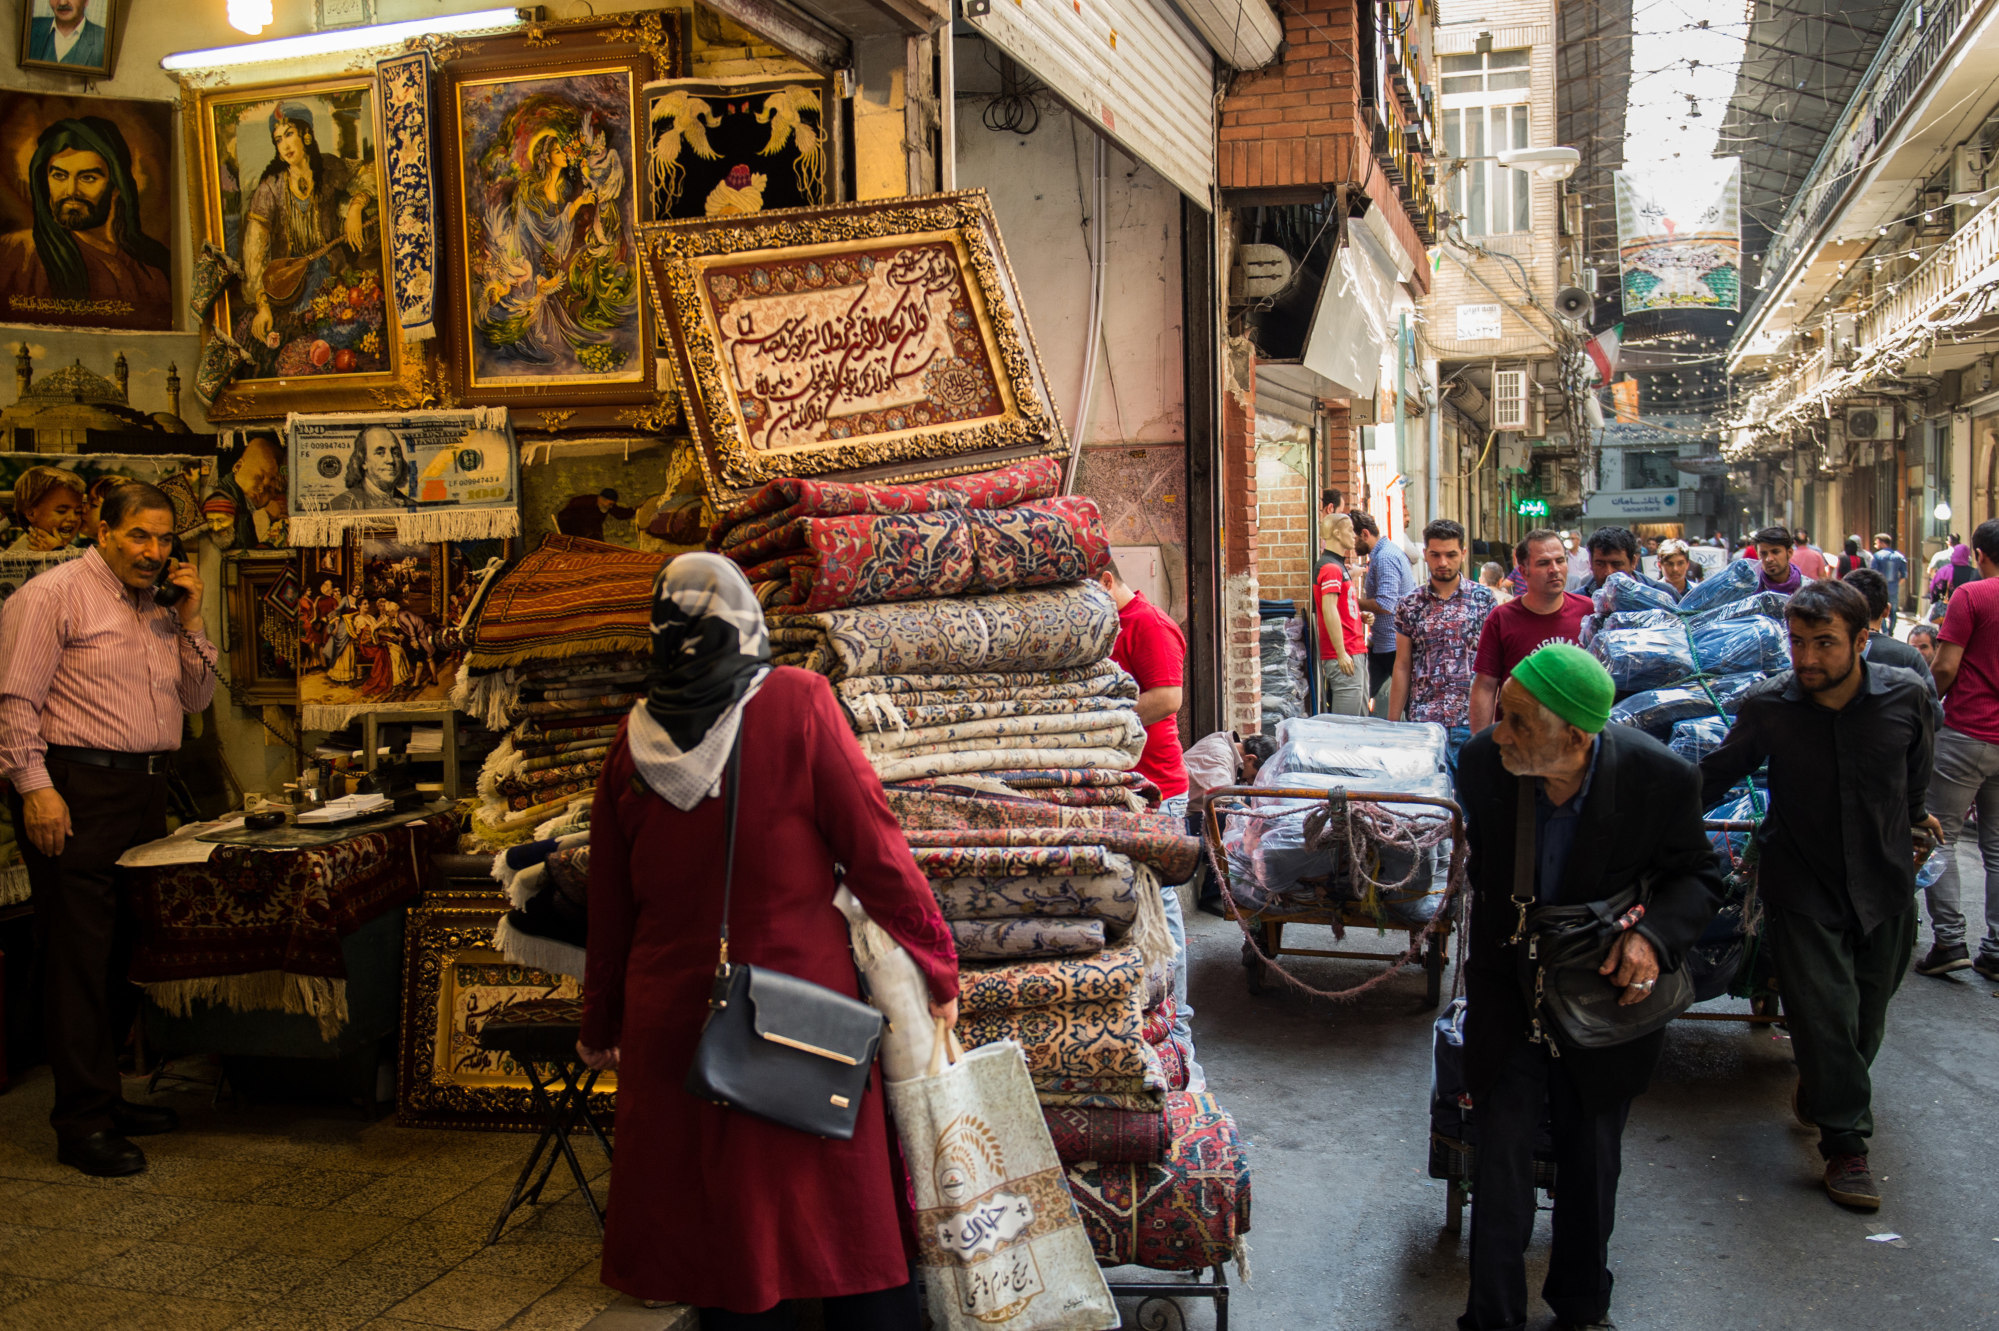 Carpet traders wheel their wares past a store selling Persian rugs inside the Grand Bazaar in Tehran, on Aug. 6. Photographer: Ali Mohammadi/Bloomberg